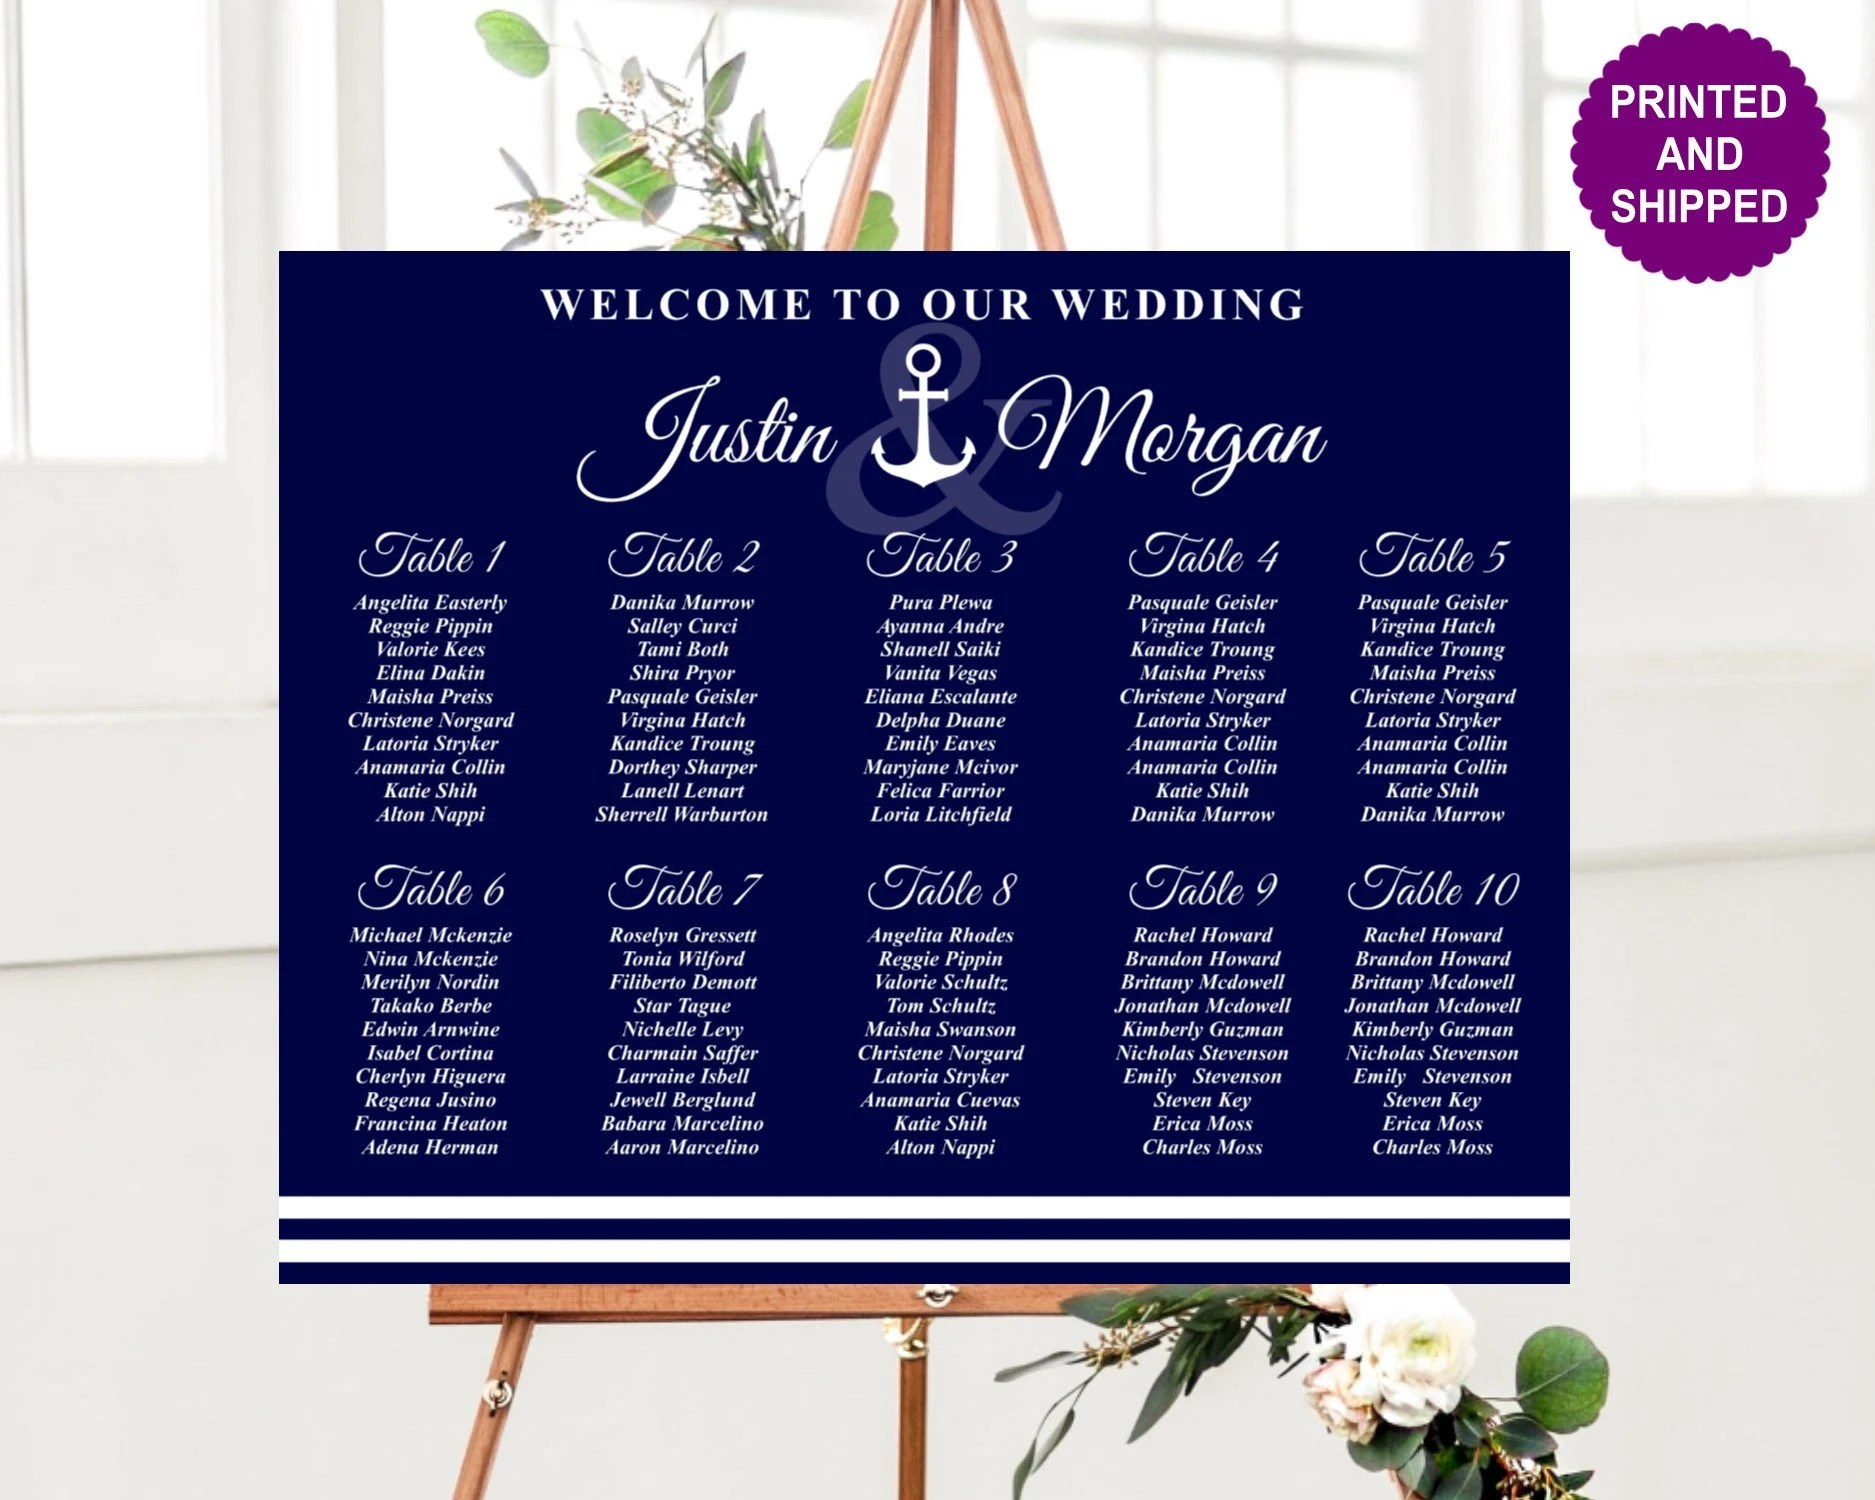 Printed nautical seating chart navy wedding anchor foam board guest plan poster also etsy rh